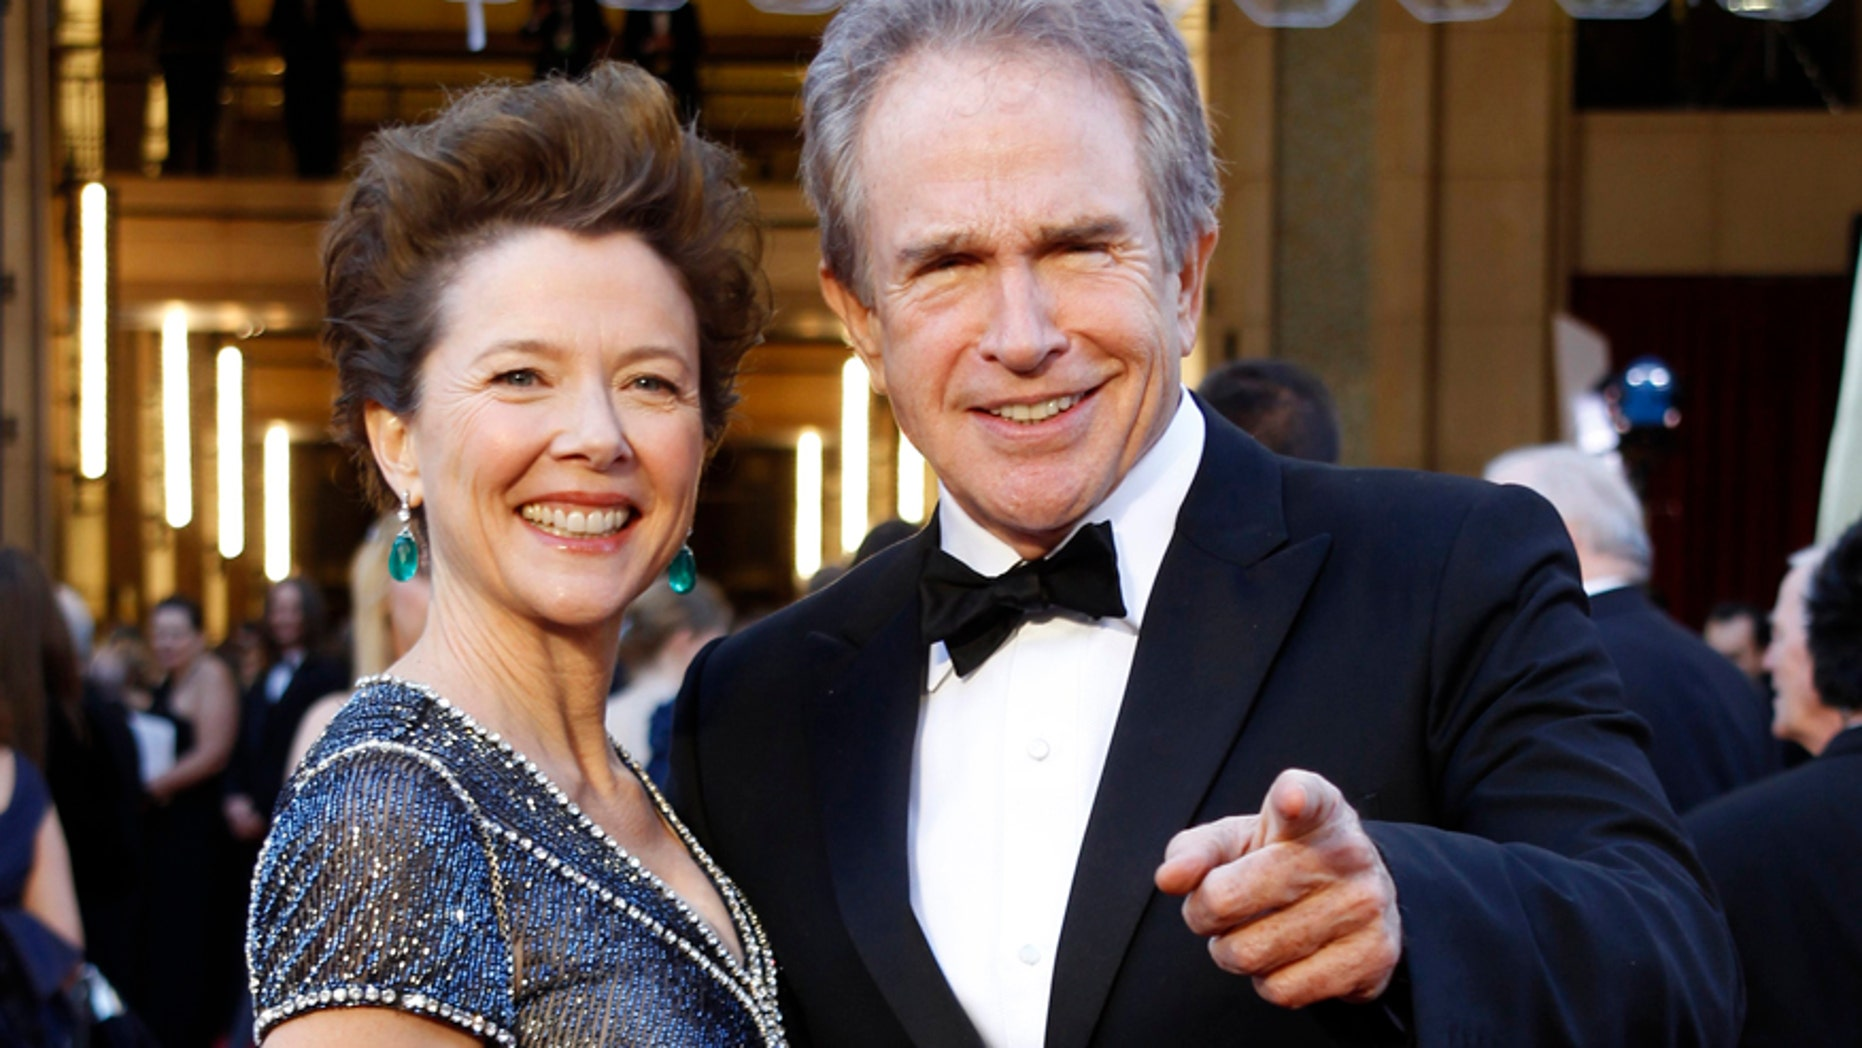 Annette Bening and husband Warren Beatty arrive at the 83rd Academy Awards in Hollywood, California, February 27, 2011.